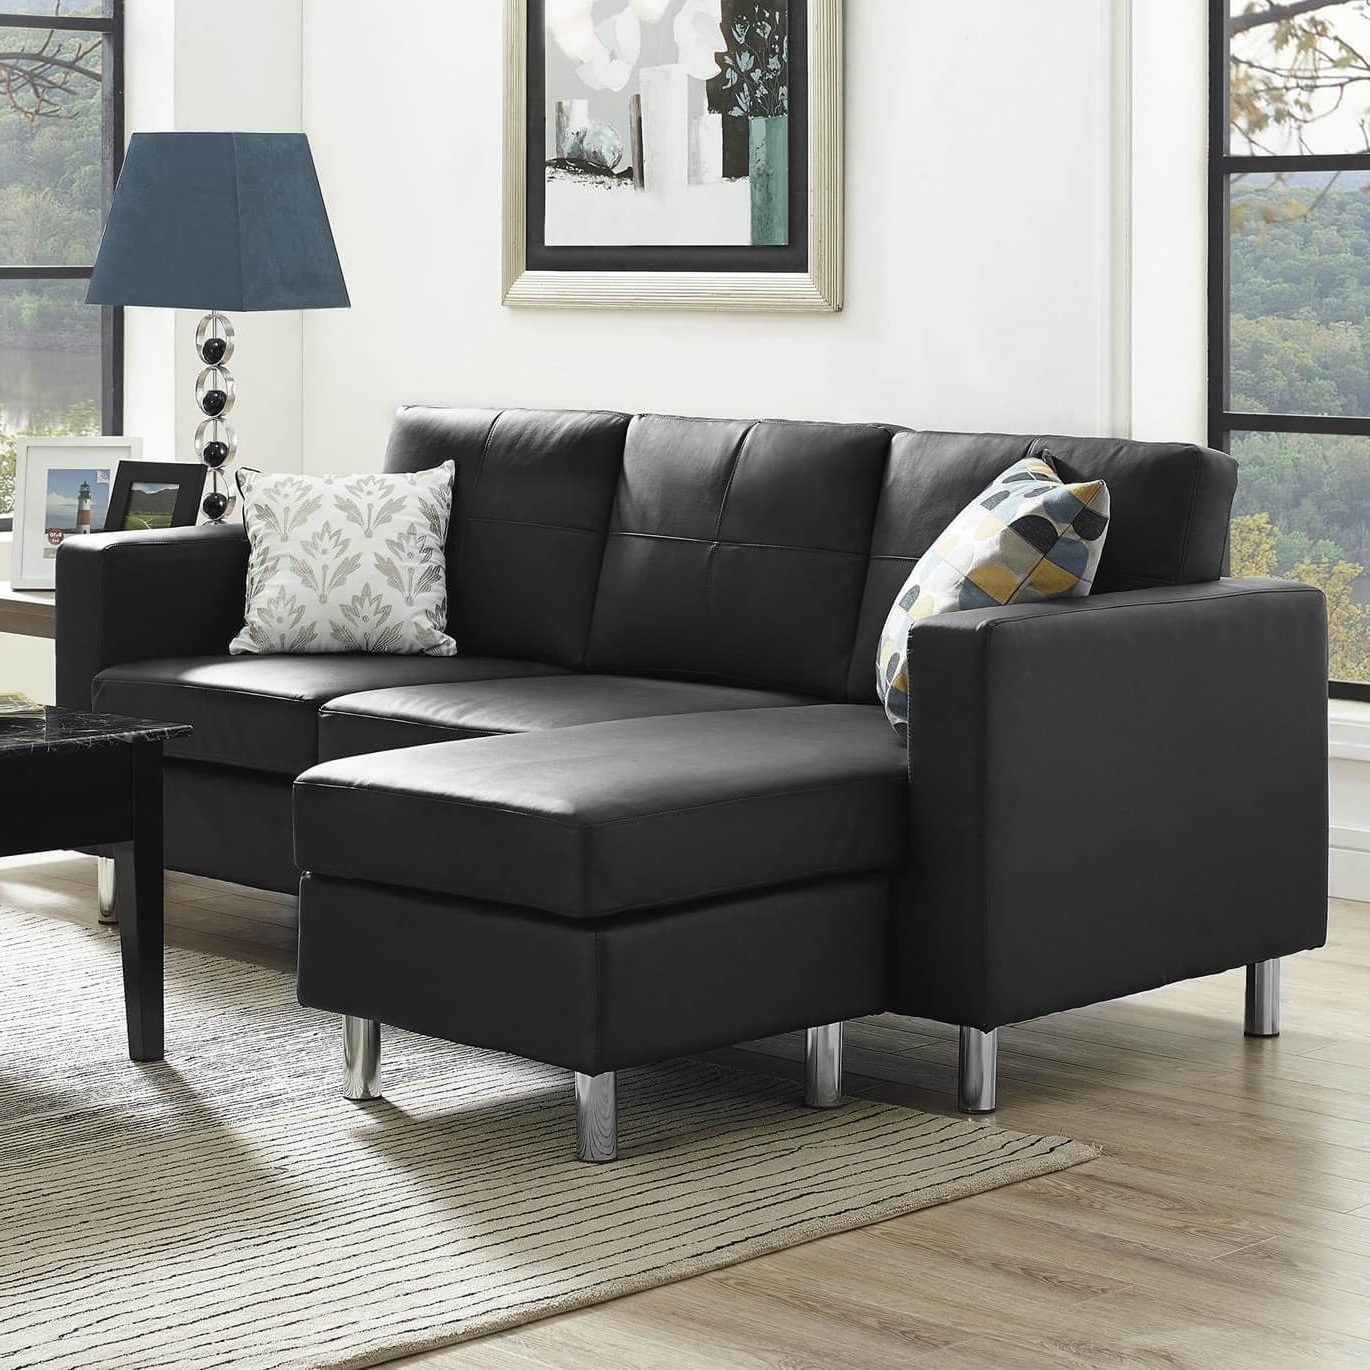 Recent Sectional Sofas Under 400 Intended For 40 Cheap Sectional Sofas Under $500 For (View 19 of 20)